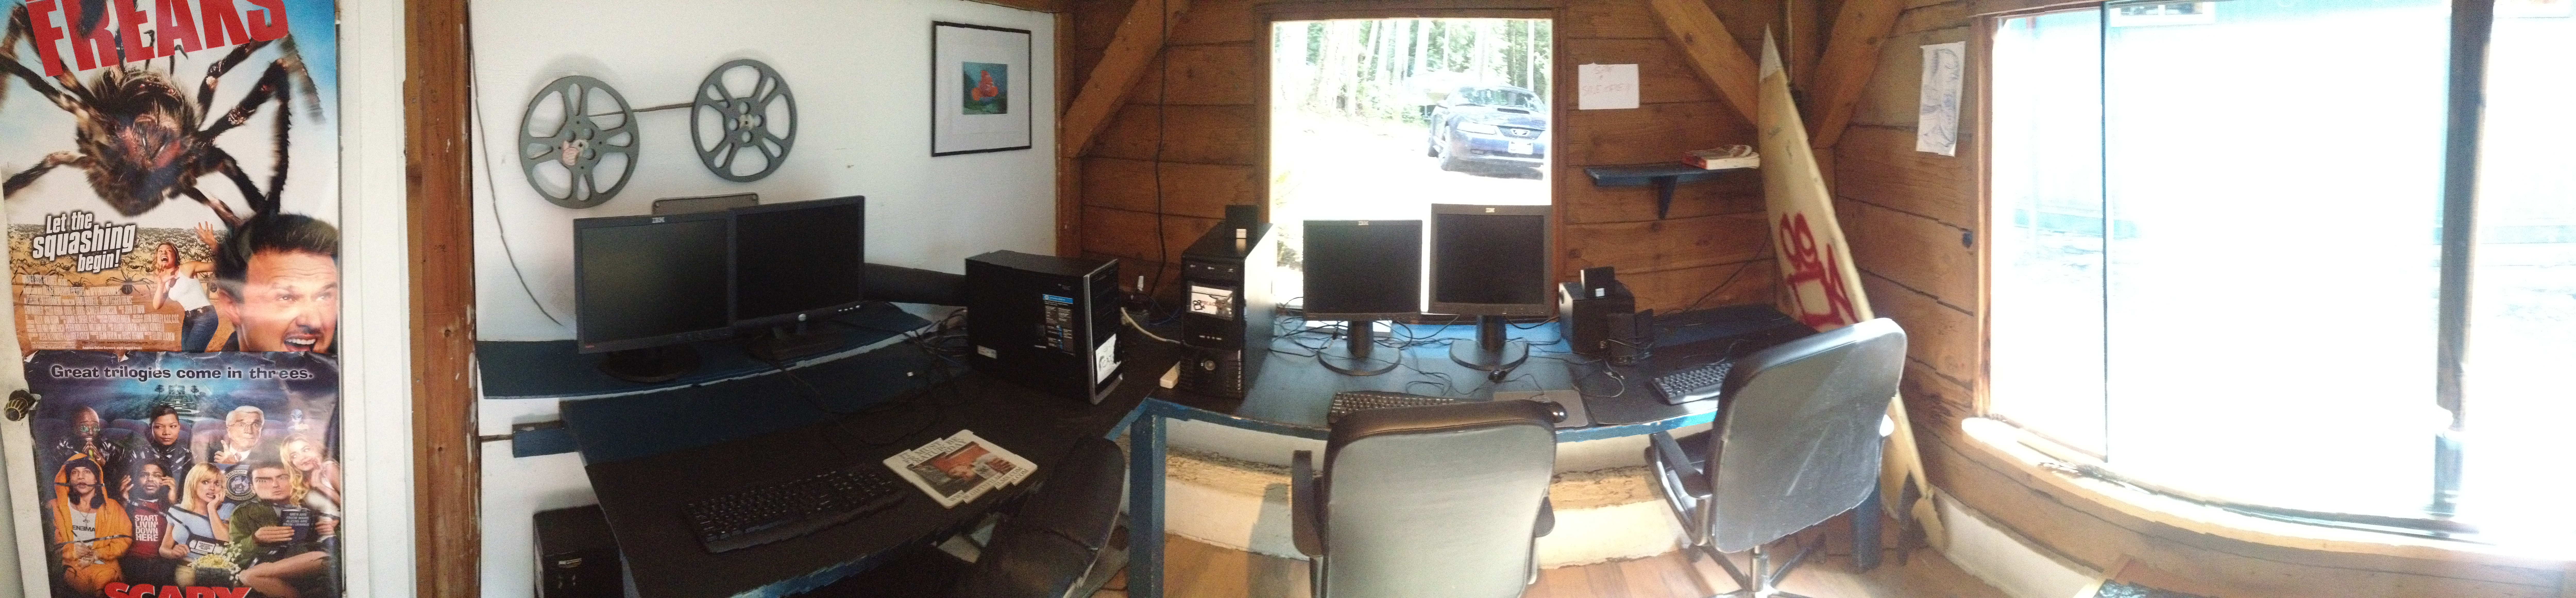 THE FISH BOWL EDITING SUITE